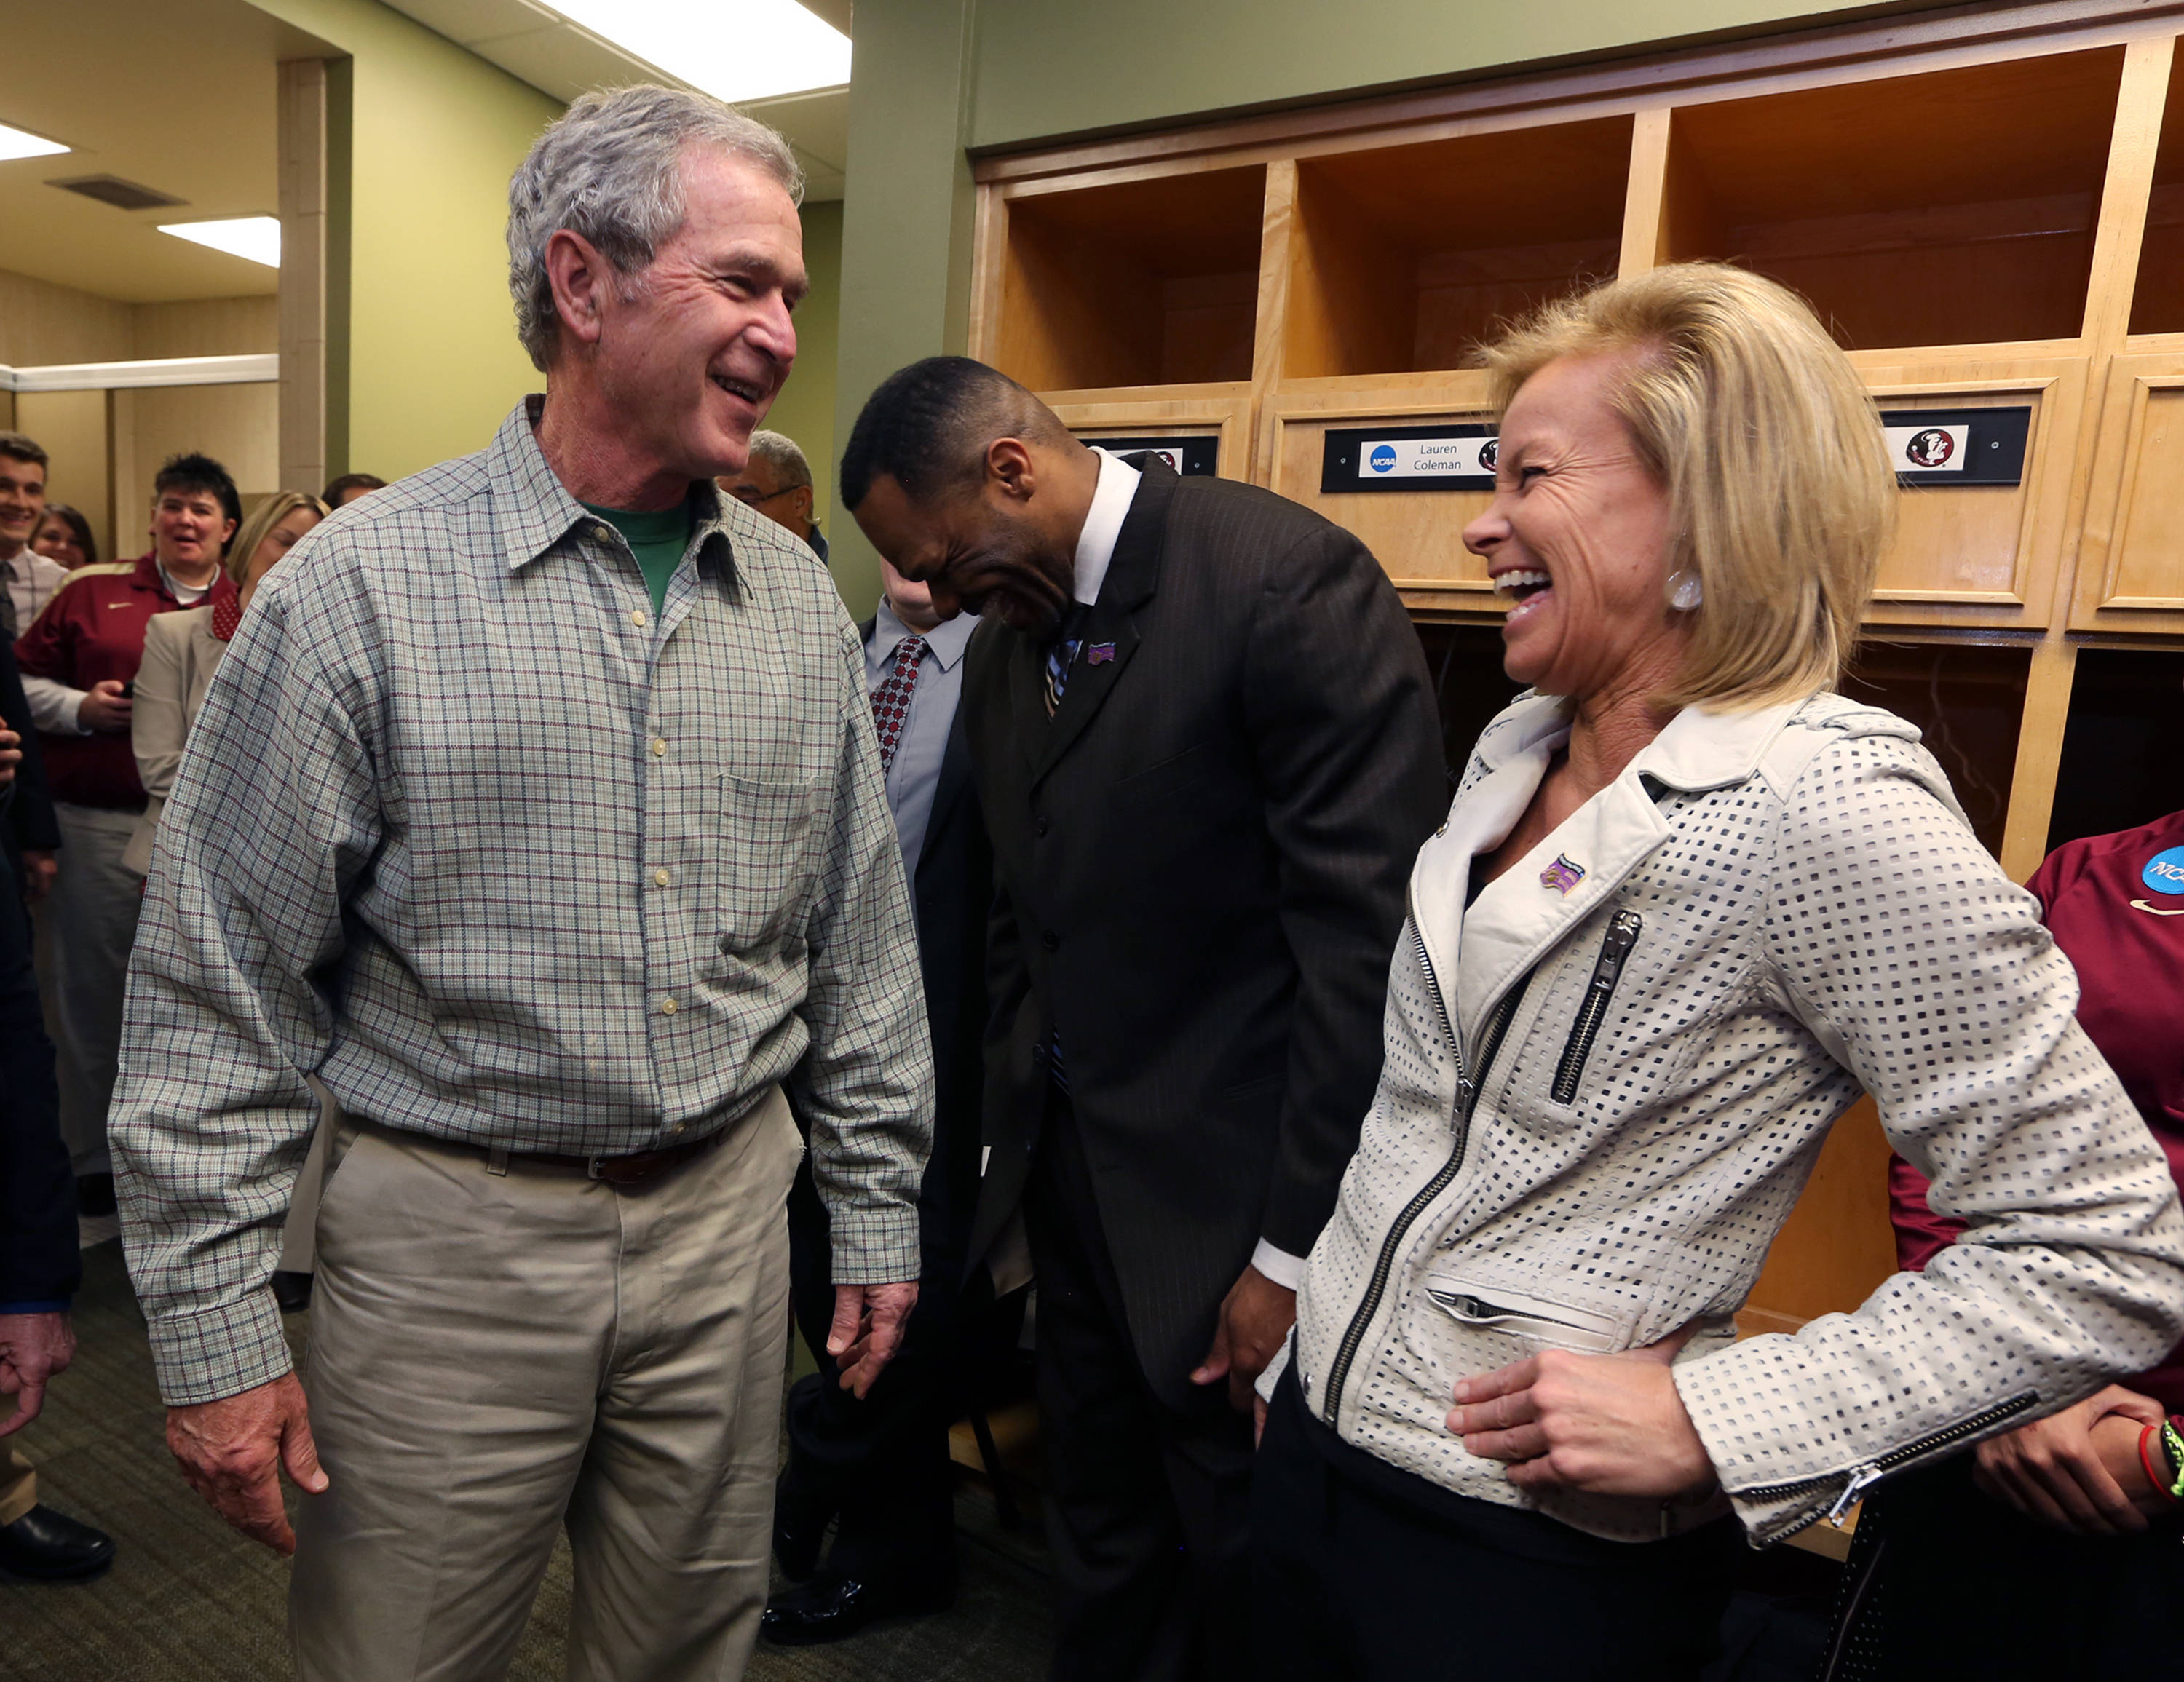 Former President George W. Bush laughs with Florida State head coach Sue Semrau, right, before their second-round game against Baylor in the NCAA women's college basketball tournament, Tuesday, March, 26, 2013, in Waco, Texas. (AP Photo/Rod Aydelotte, Pool)